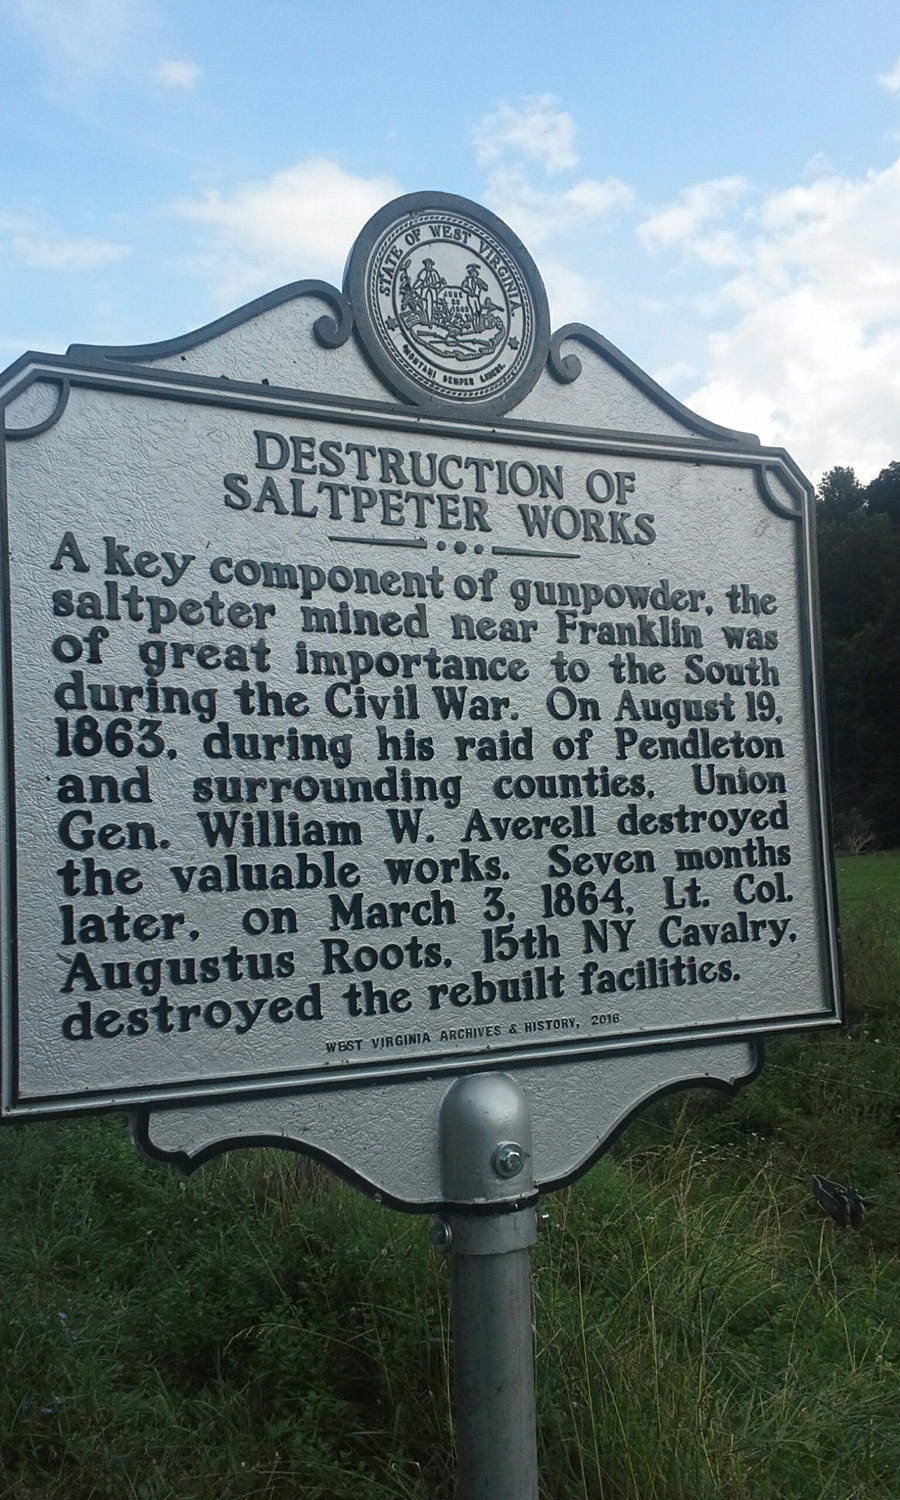 Destruction of Saltpeter Works Historical Marker